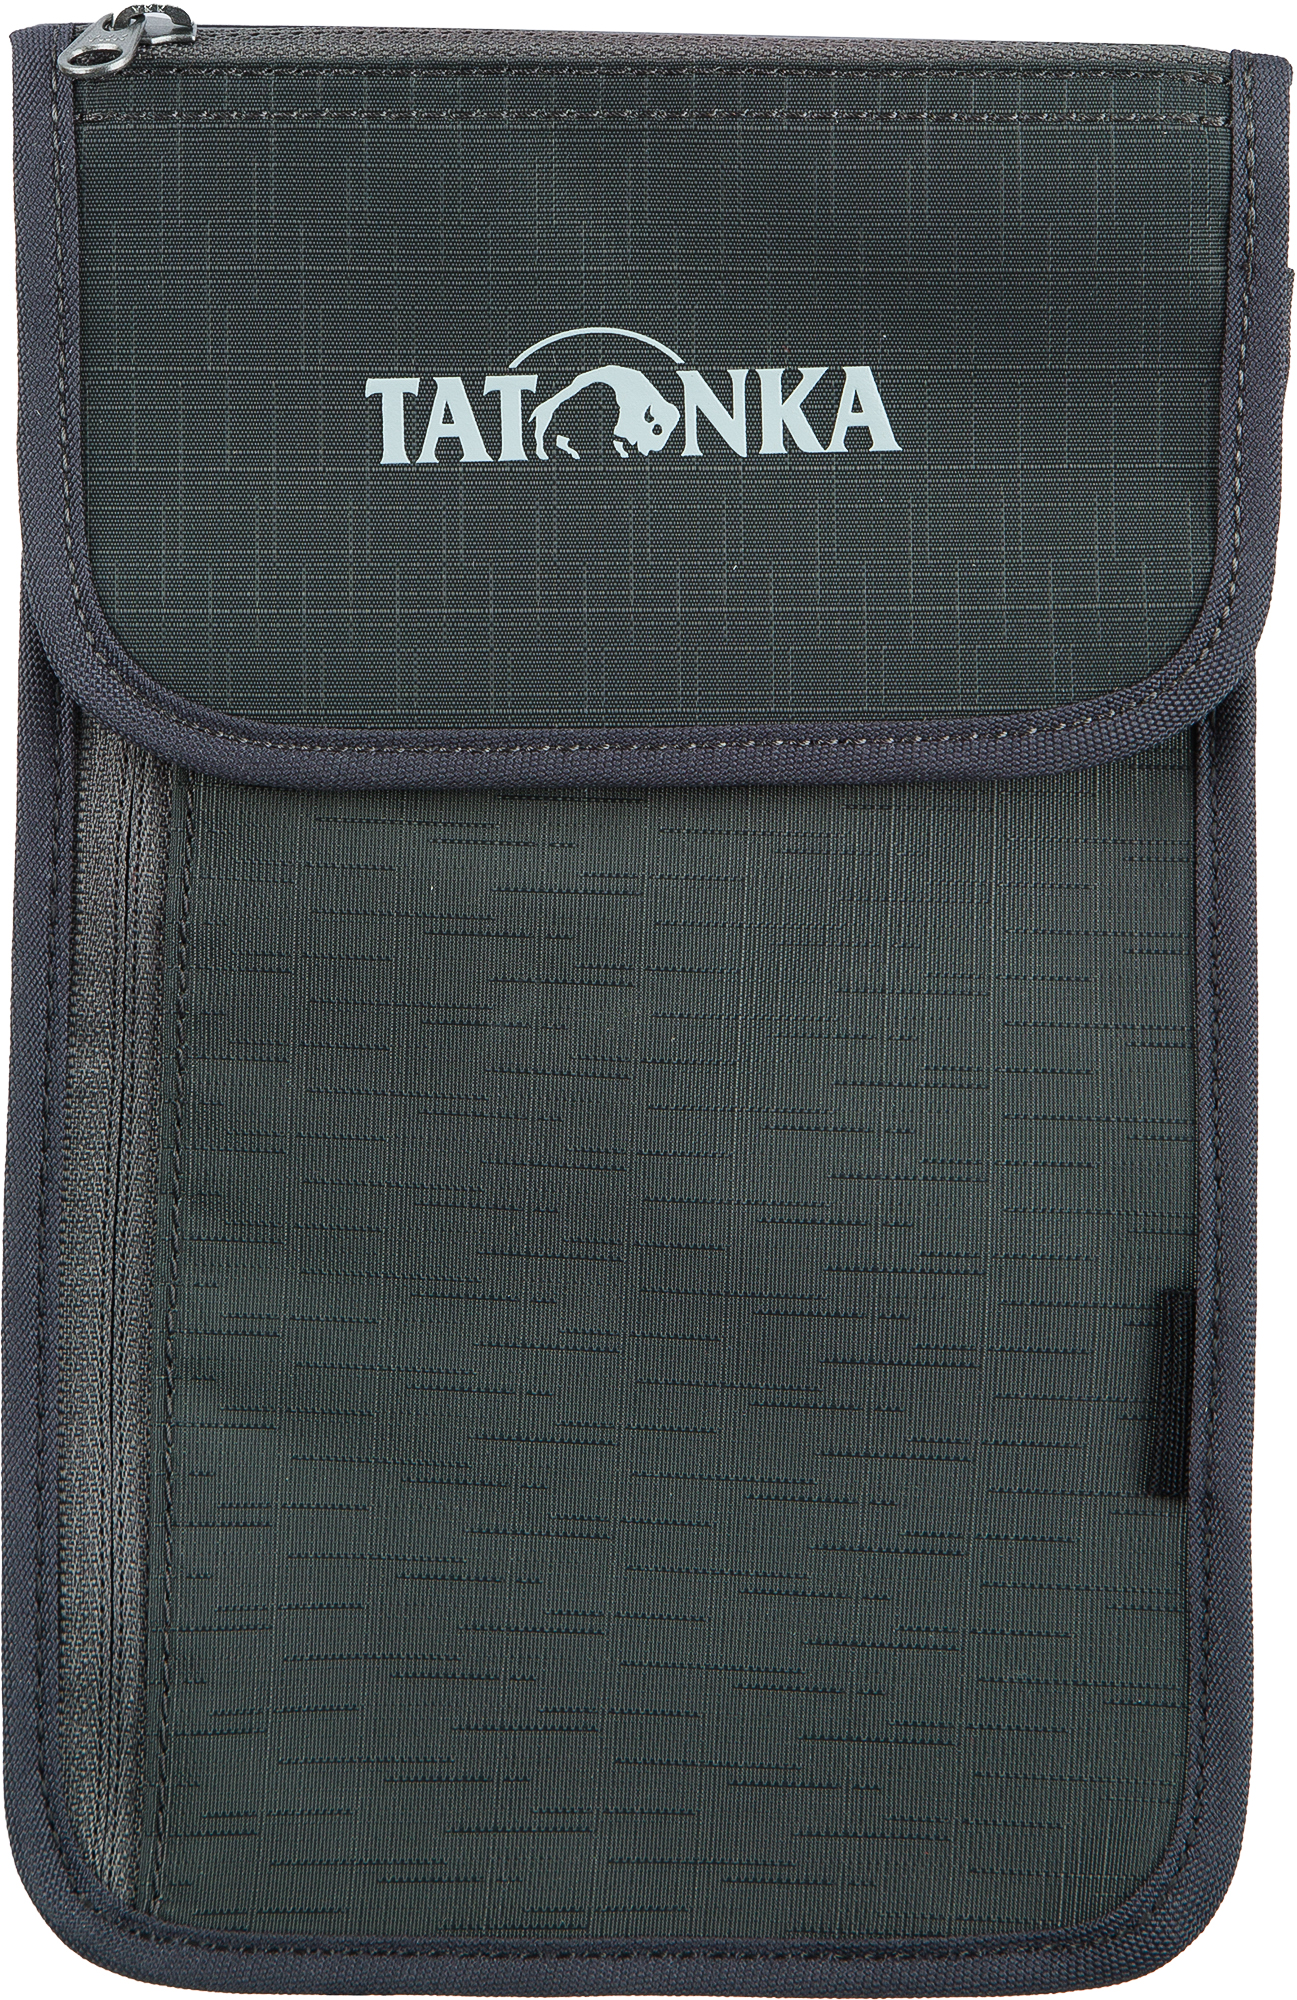 Tatonka Кошелек Tatonka NECK WALLET tatonka ruby 35 exp